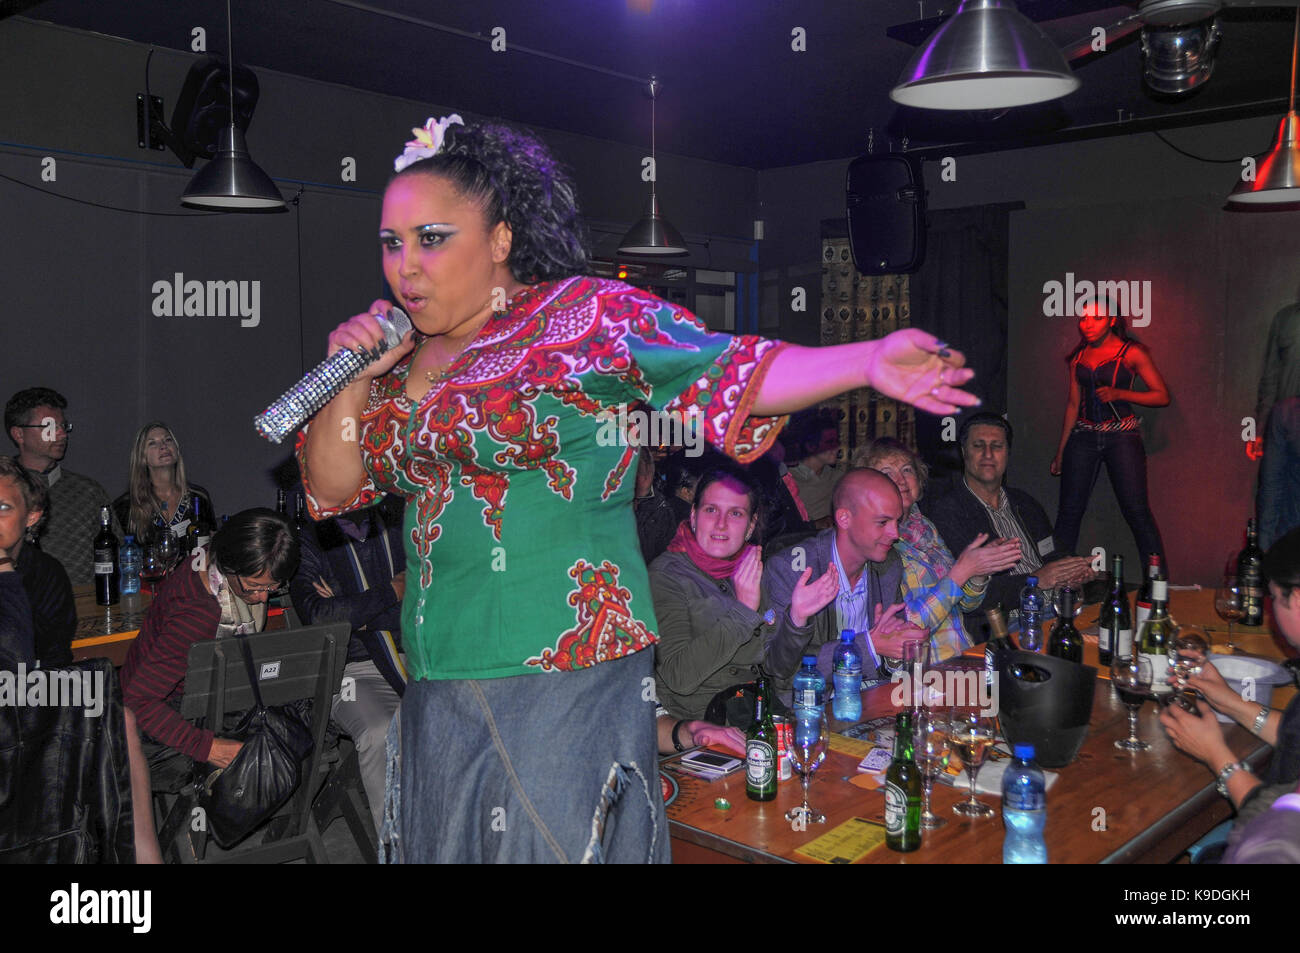 lead singer Ramaine of AmaZinc at Khayamandi Township, Stellenbosch, South Africa - Stock Image